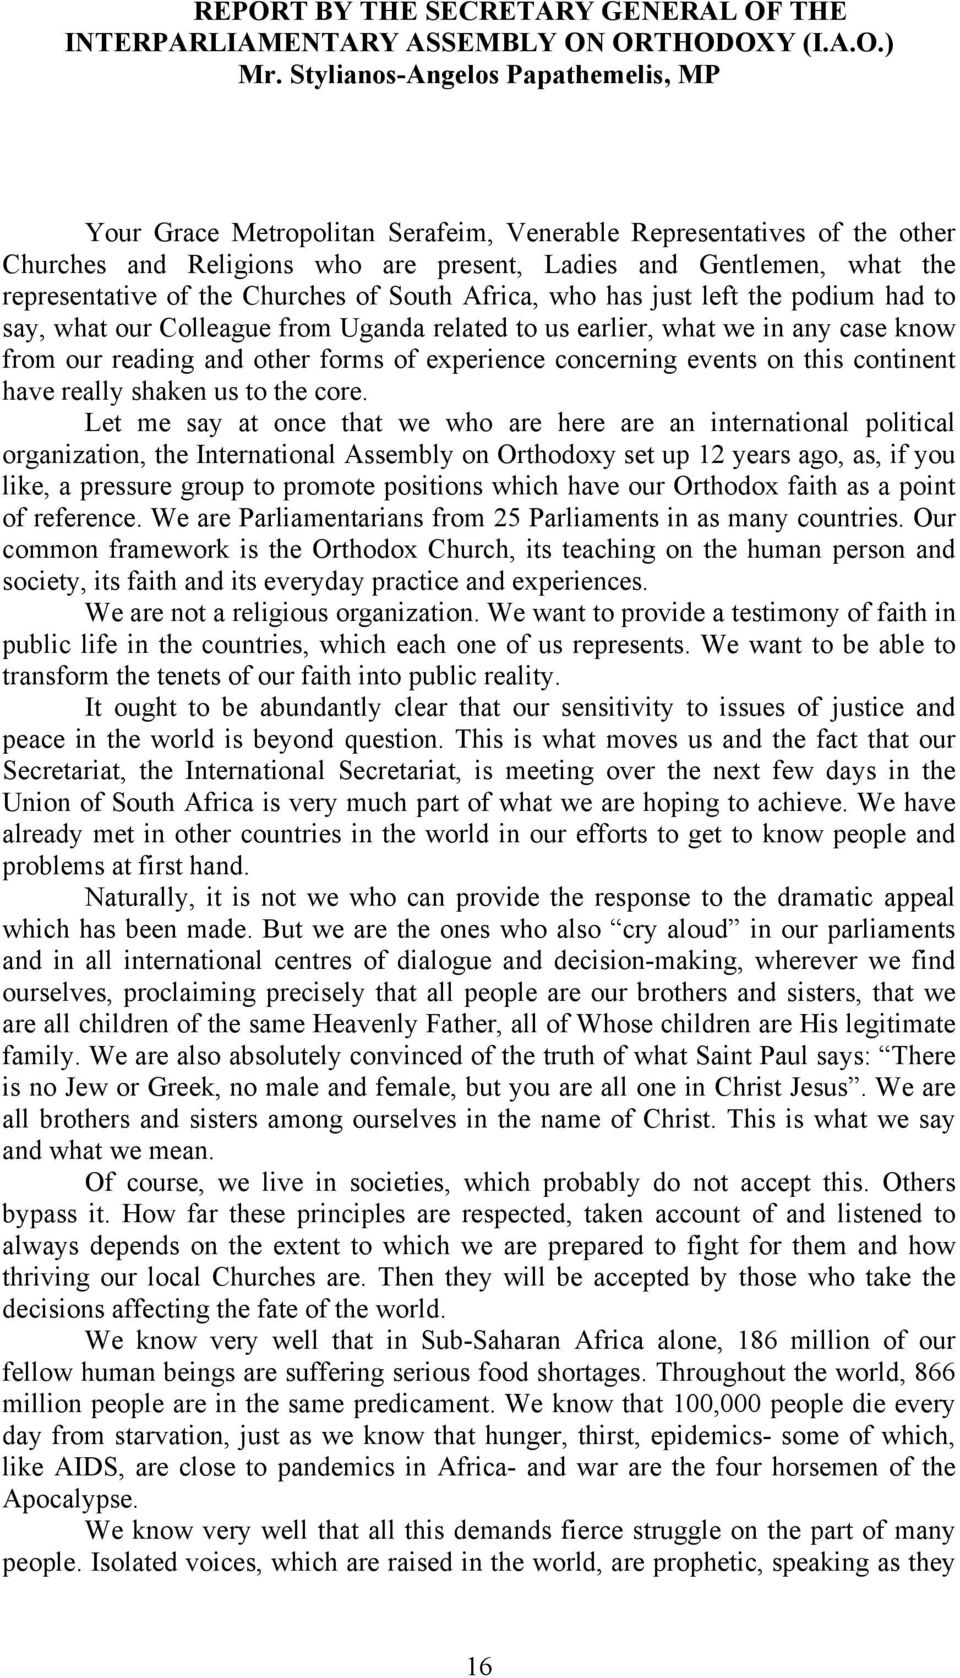 the Churches of South Africa, who has just left the podium had to say, what our Colleague from Uganda related to us earlier, what we in any case know from our reading and other forms of experience